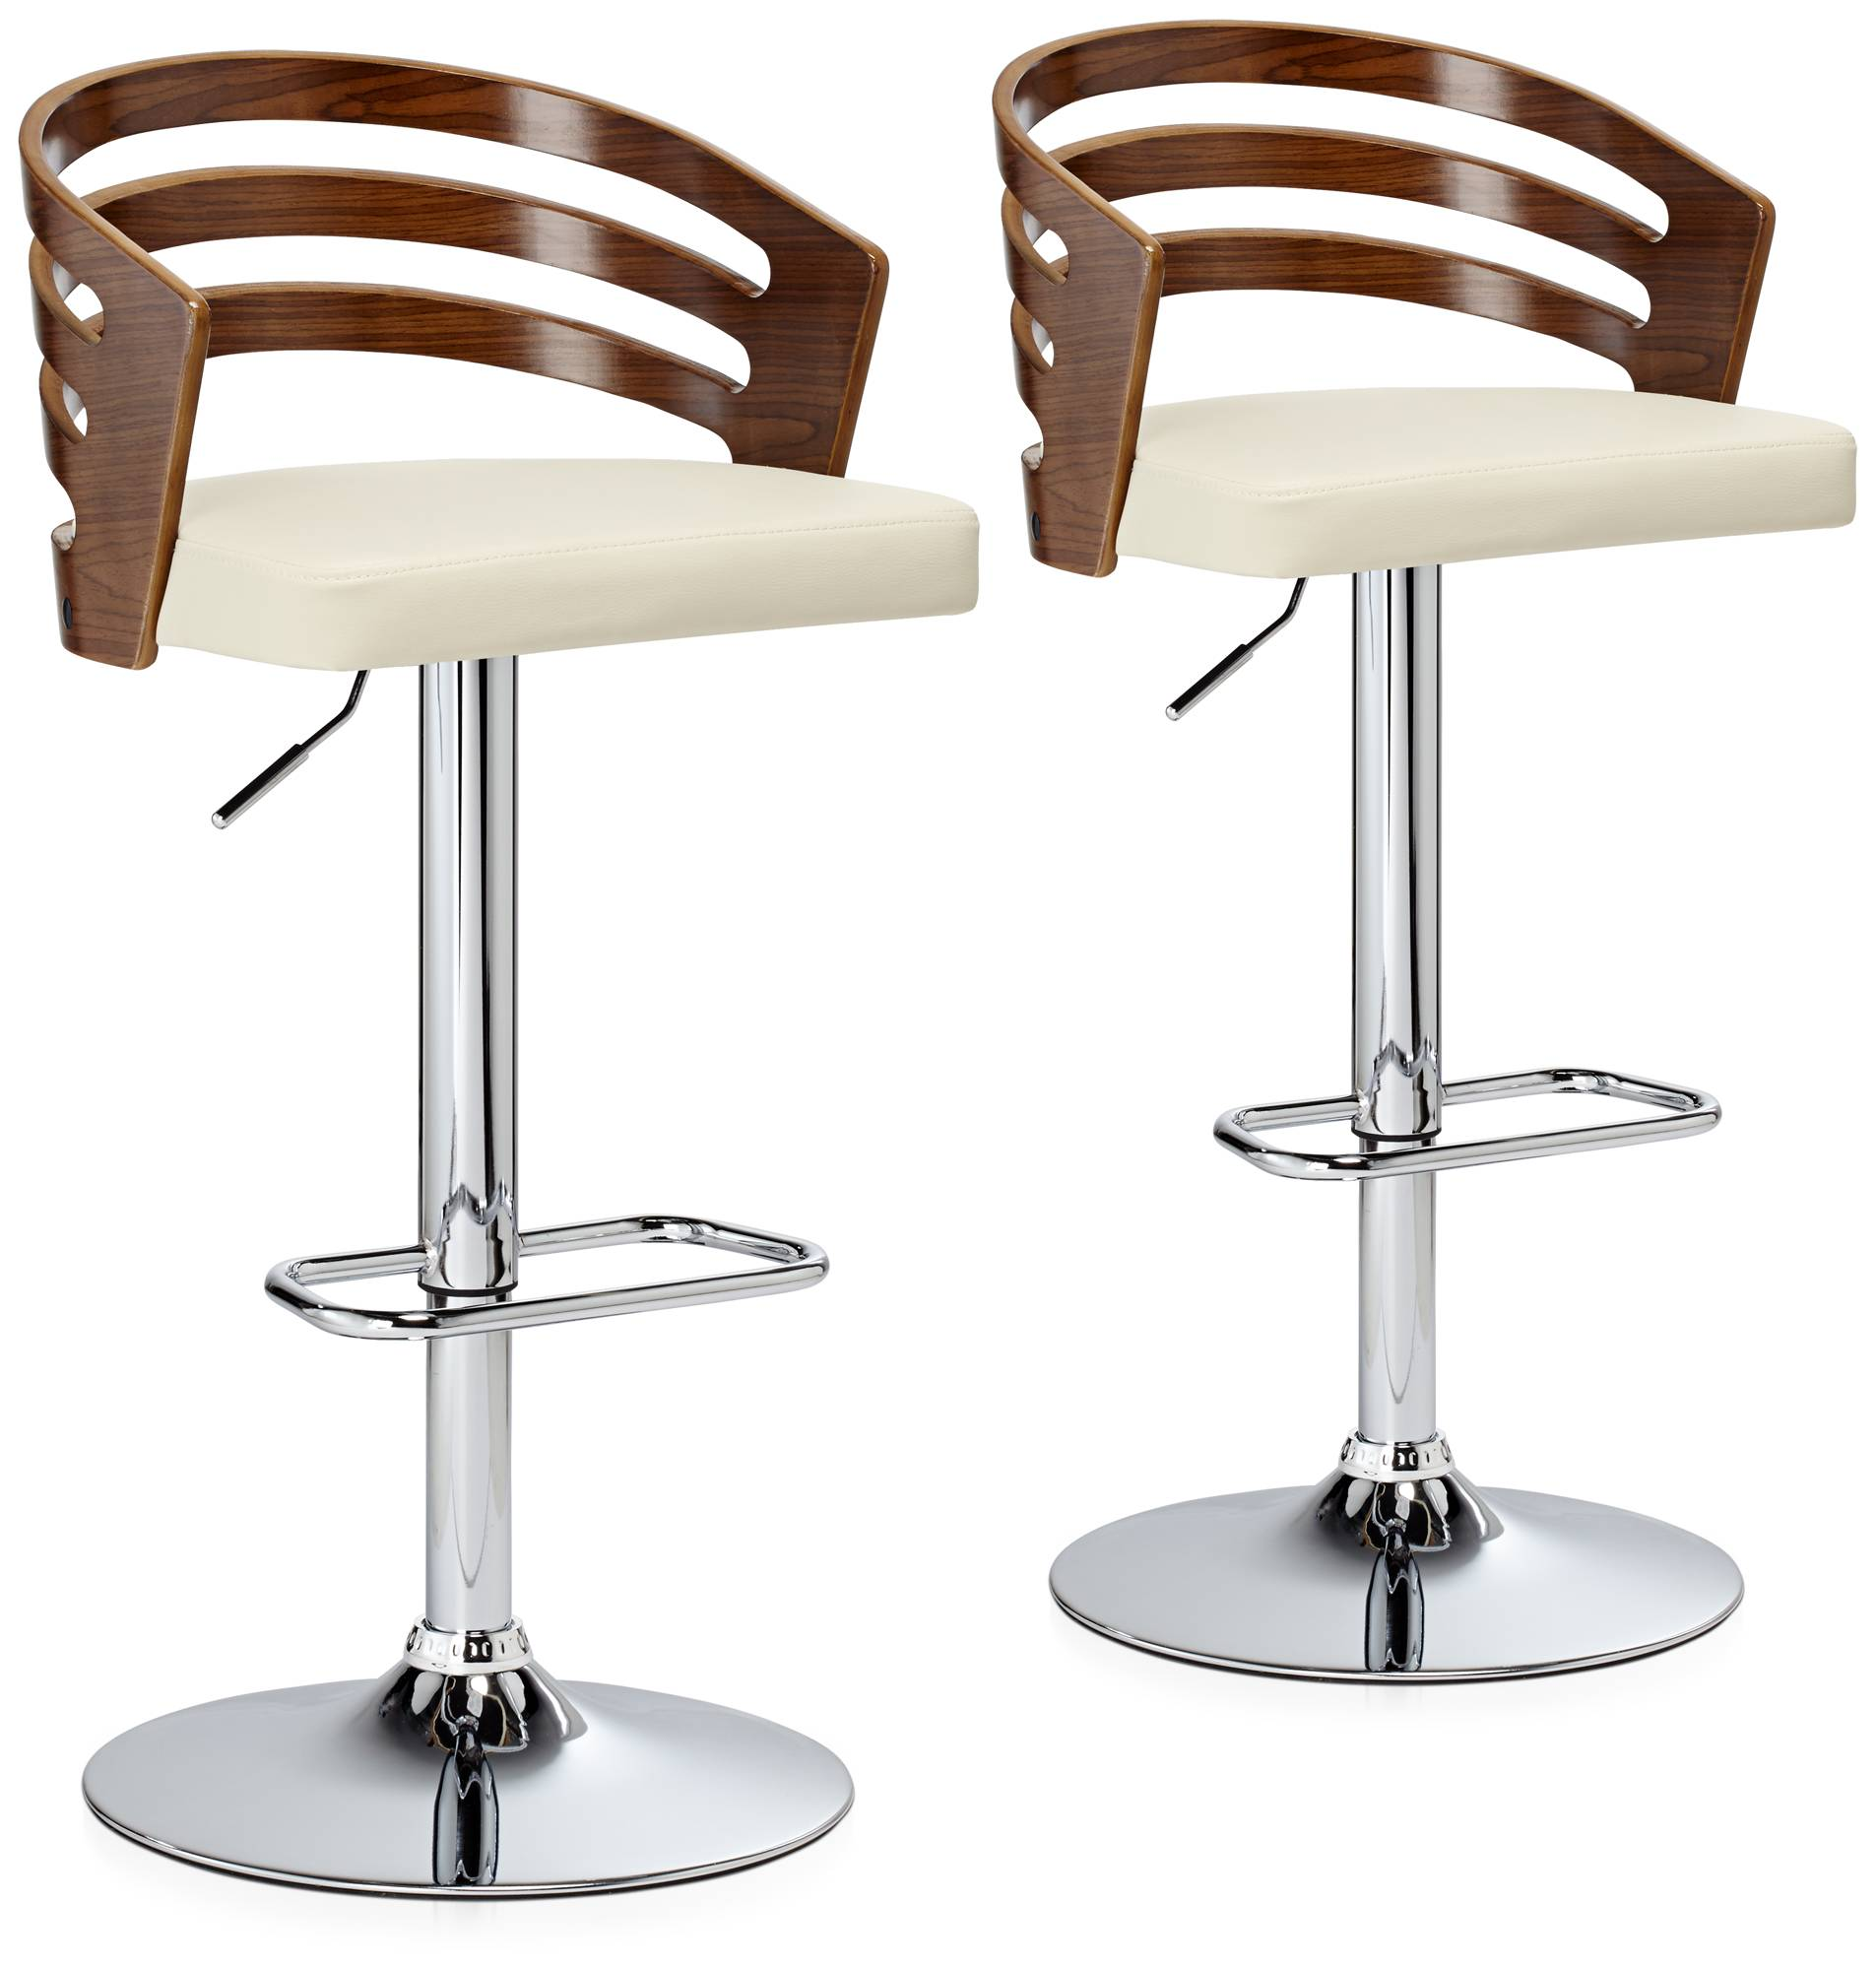 Counter Height Stools 24 In To 27 In Barstools Lamps